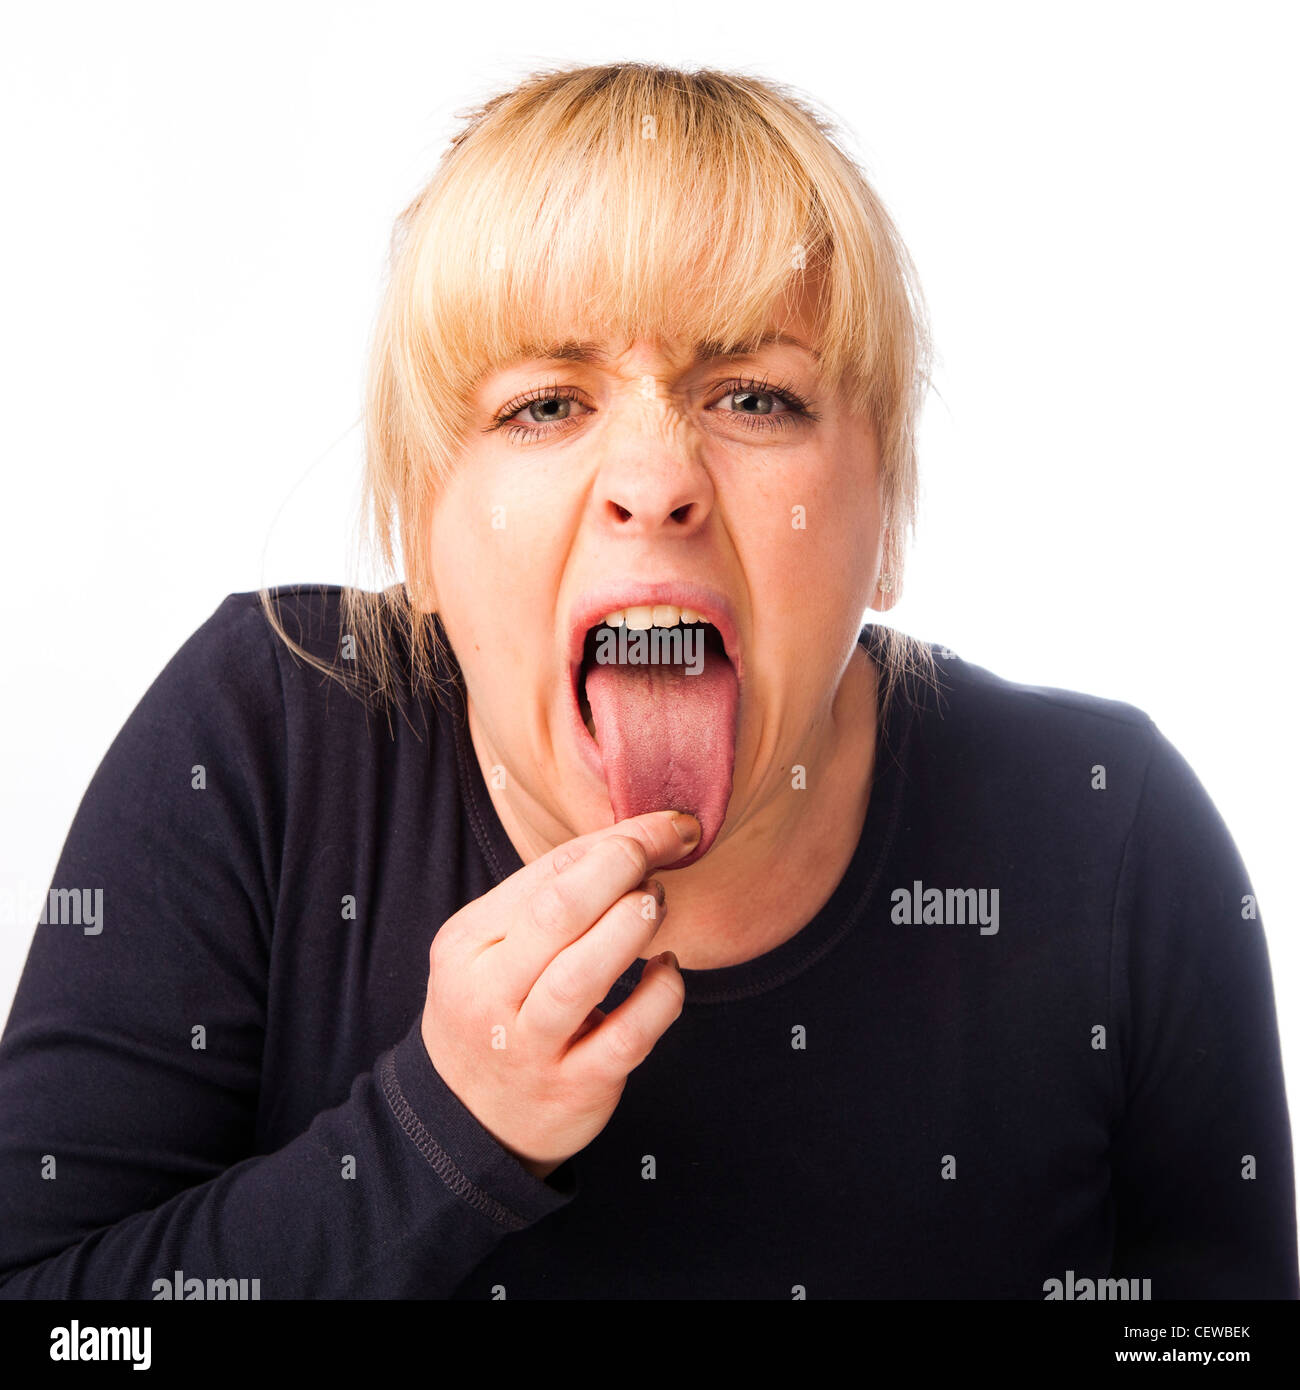 a blonde haired girl woman feeling ill, sticking her tongue out, feeling rough hungover - Stock Image